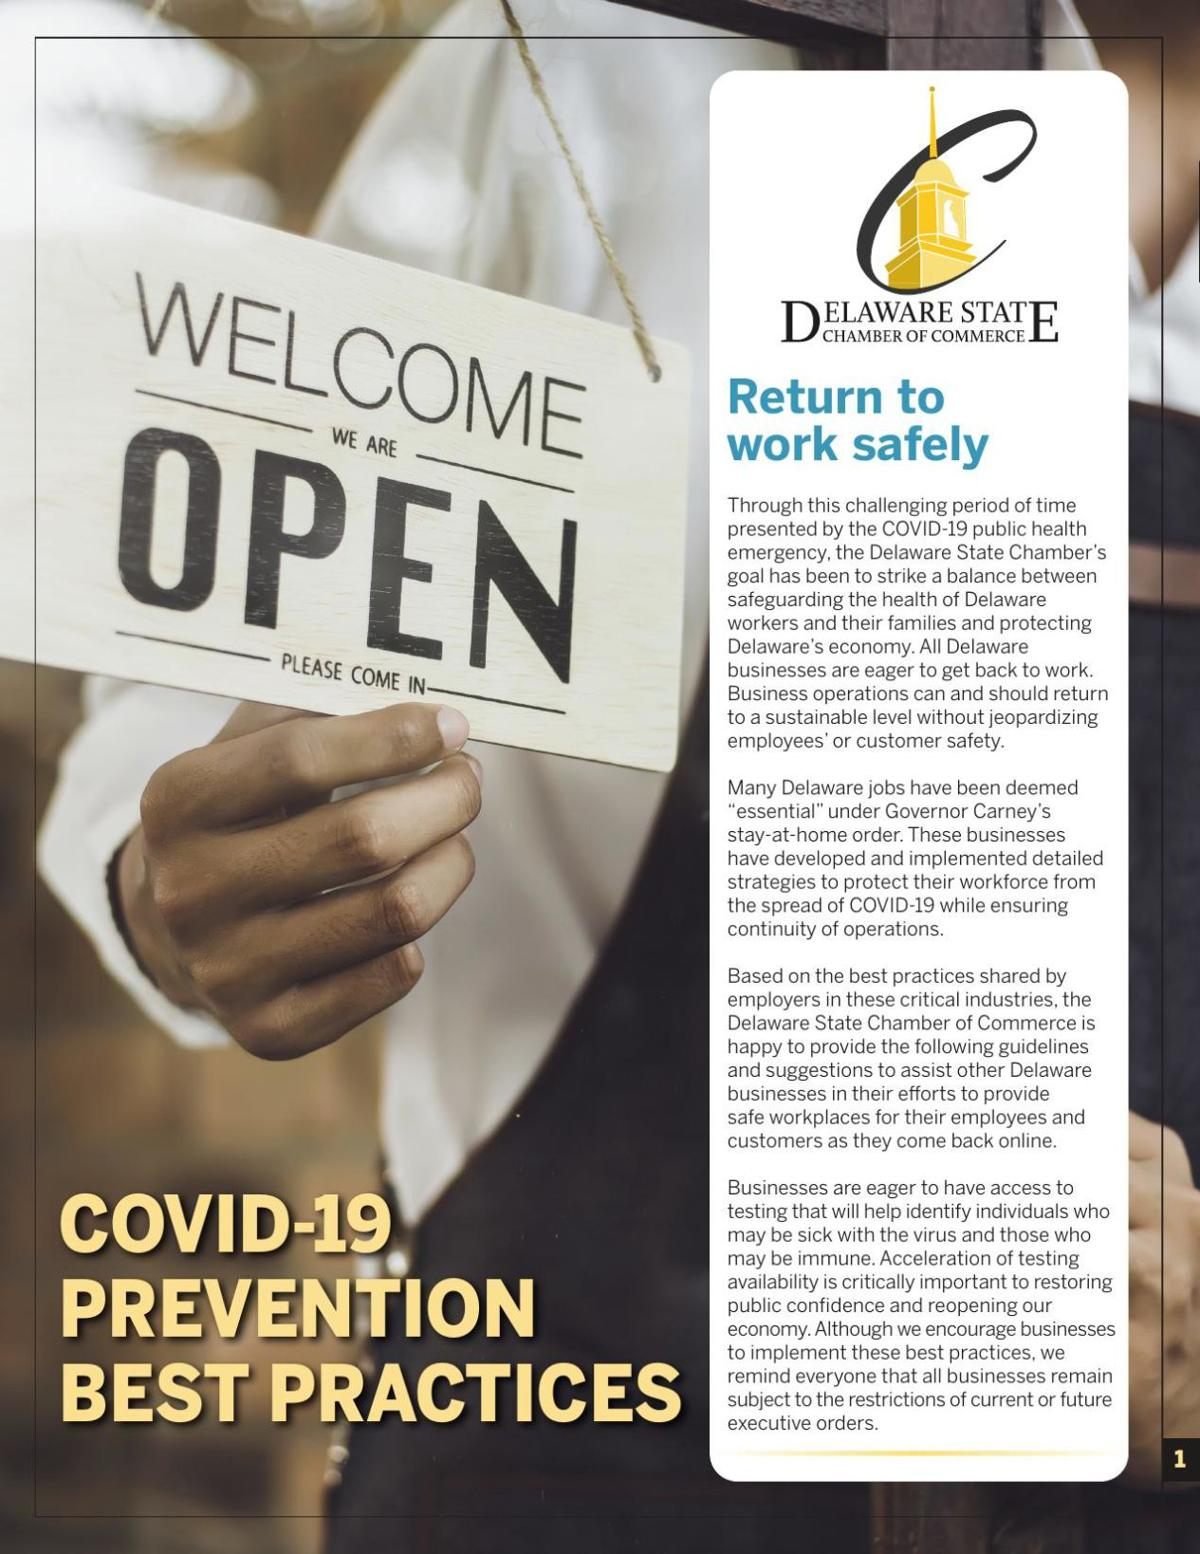 DSCC COVID-19 Prevention Best Practices